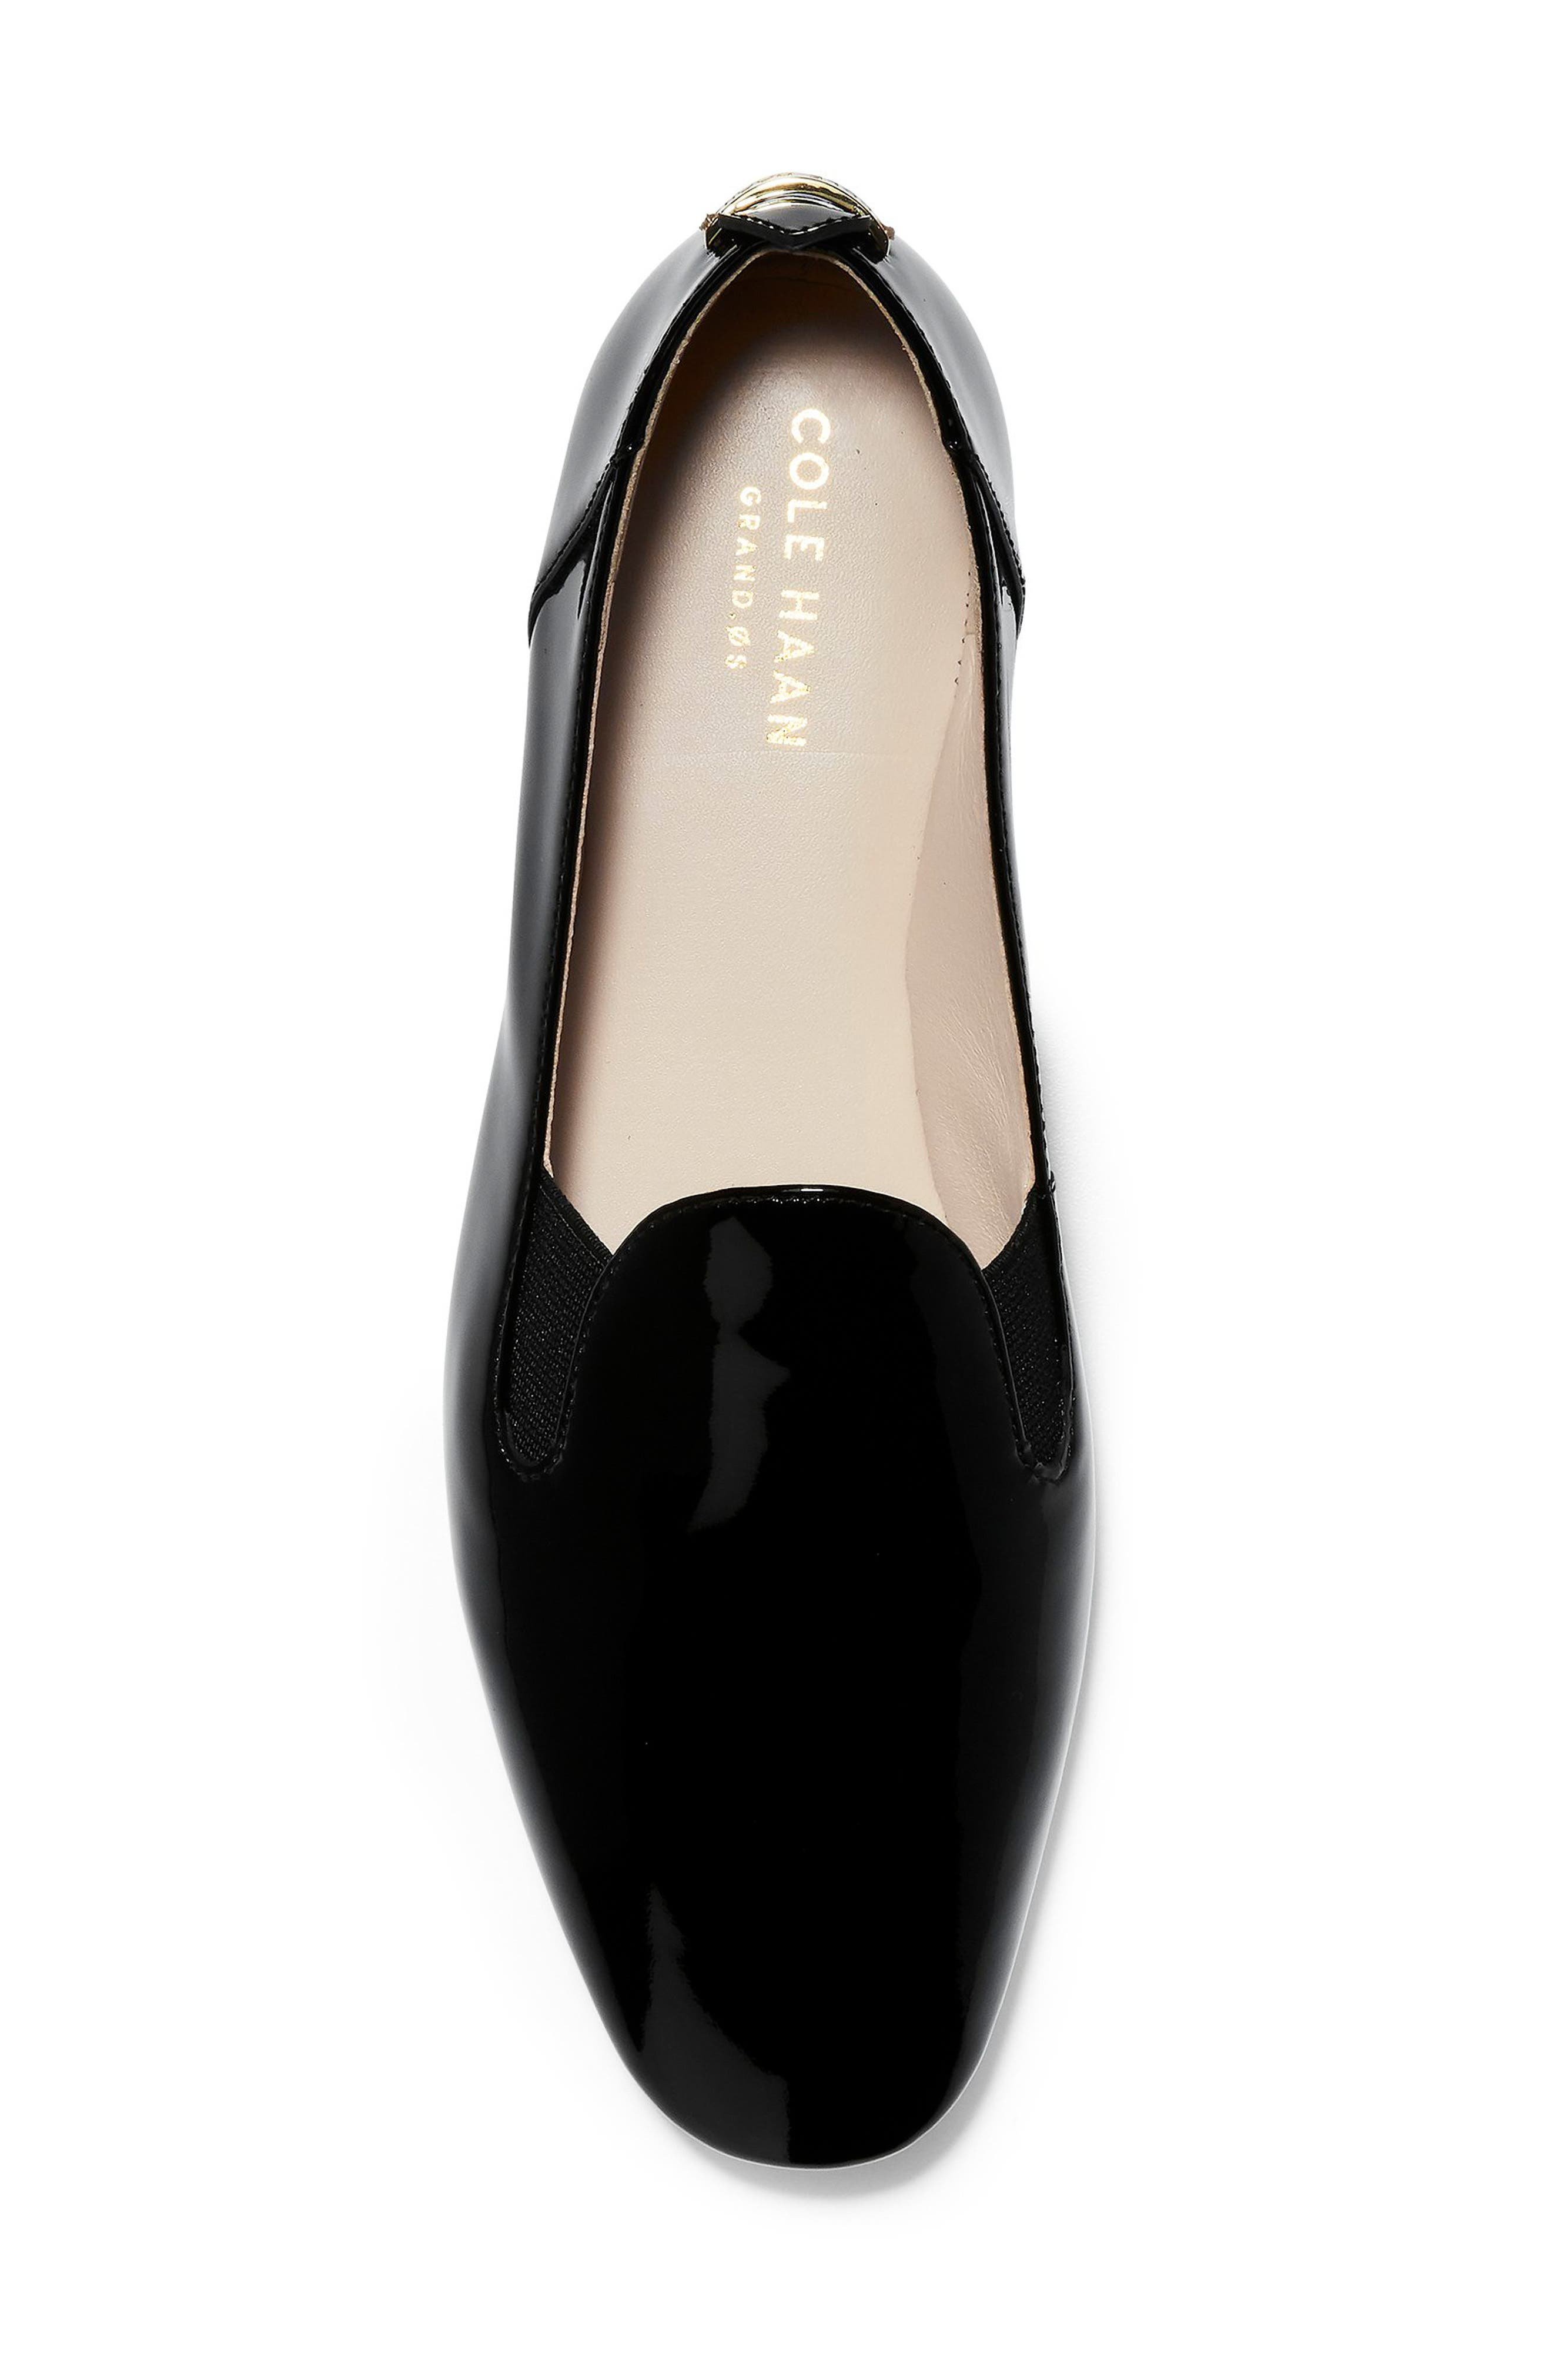 COLE HAAN, Portia Loafer, Alternate thumbnail 5, color, BLACK PATENT LEATHER